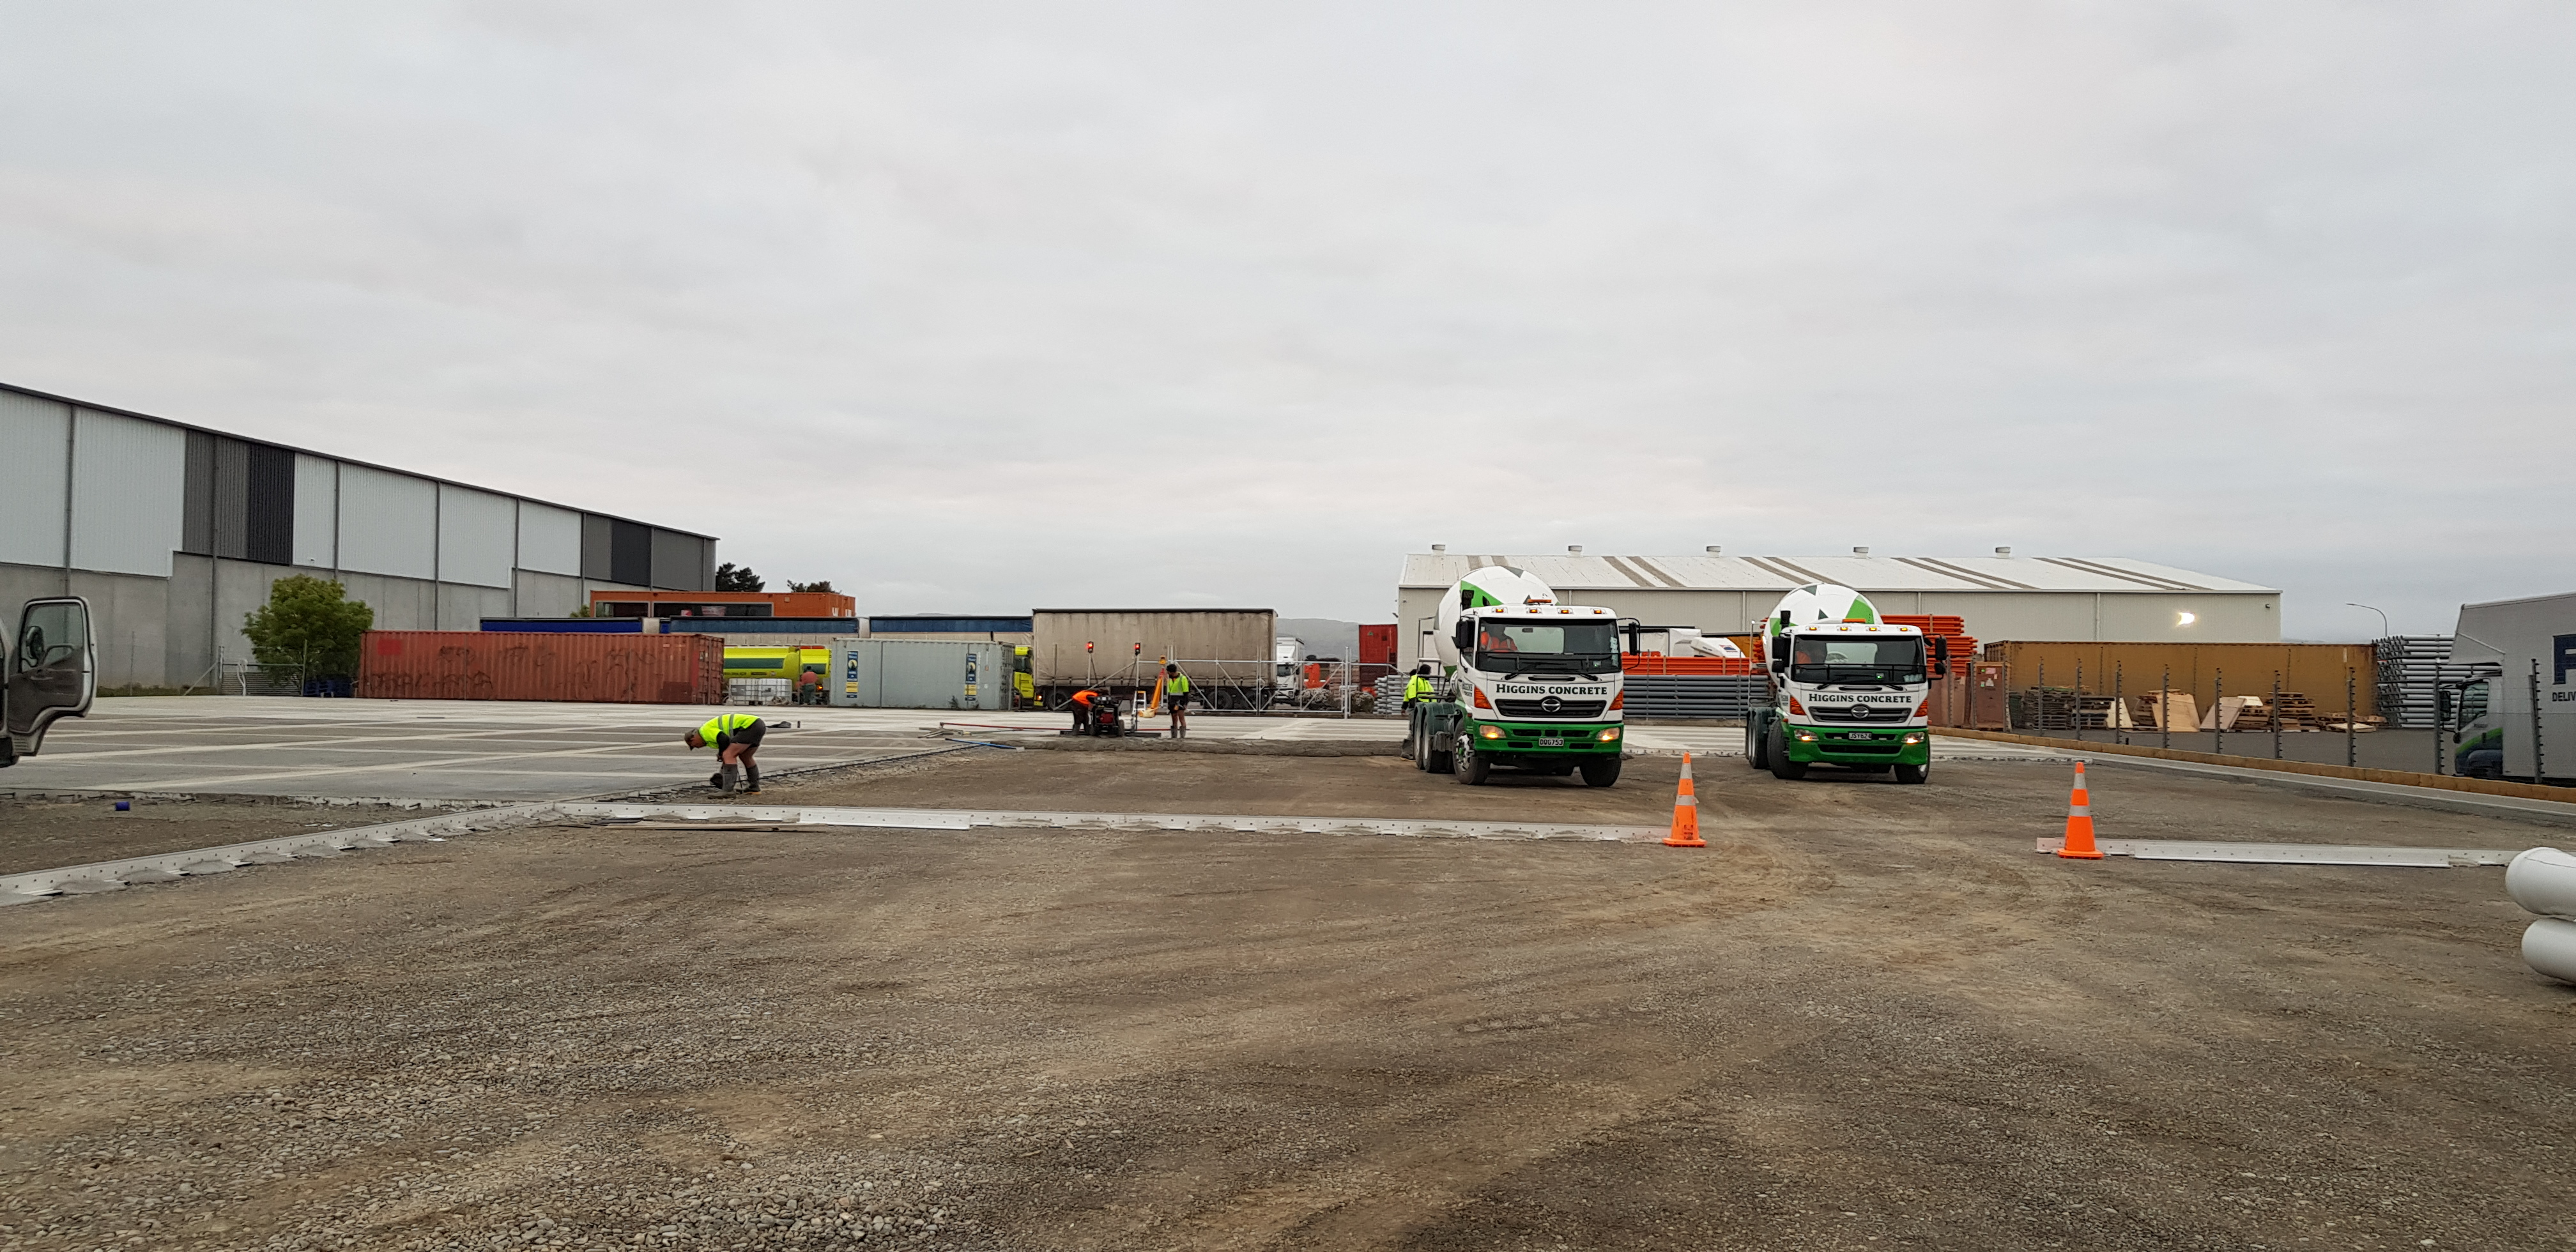 Cement trucks deliver Permaforce fibre reinforced concrete slurry to the slab site